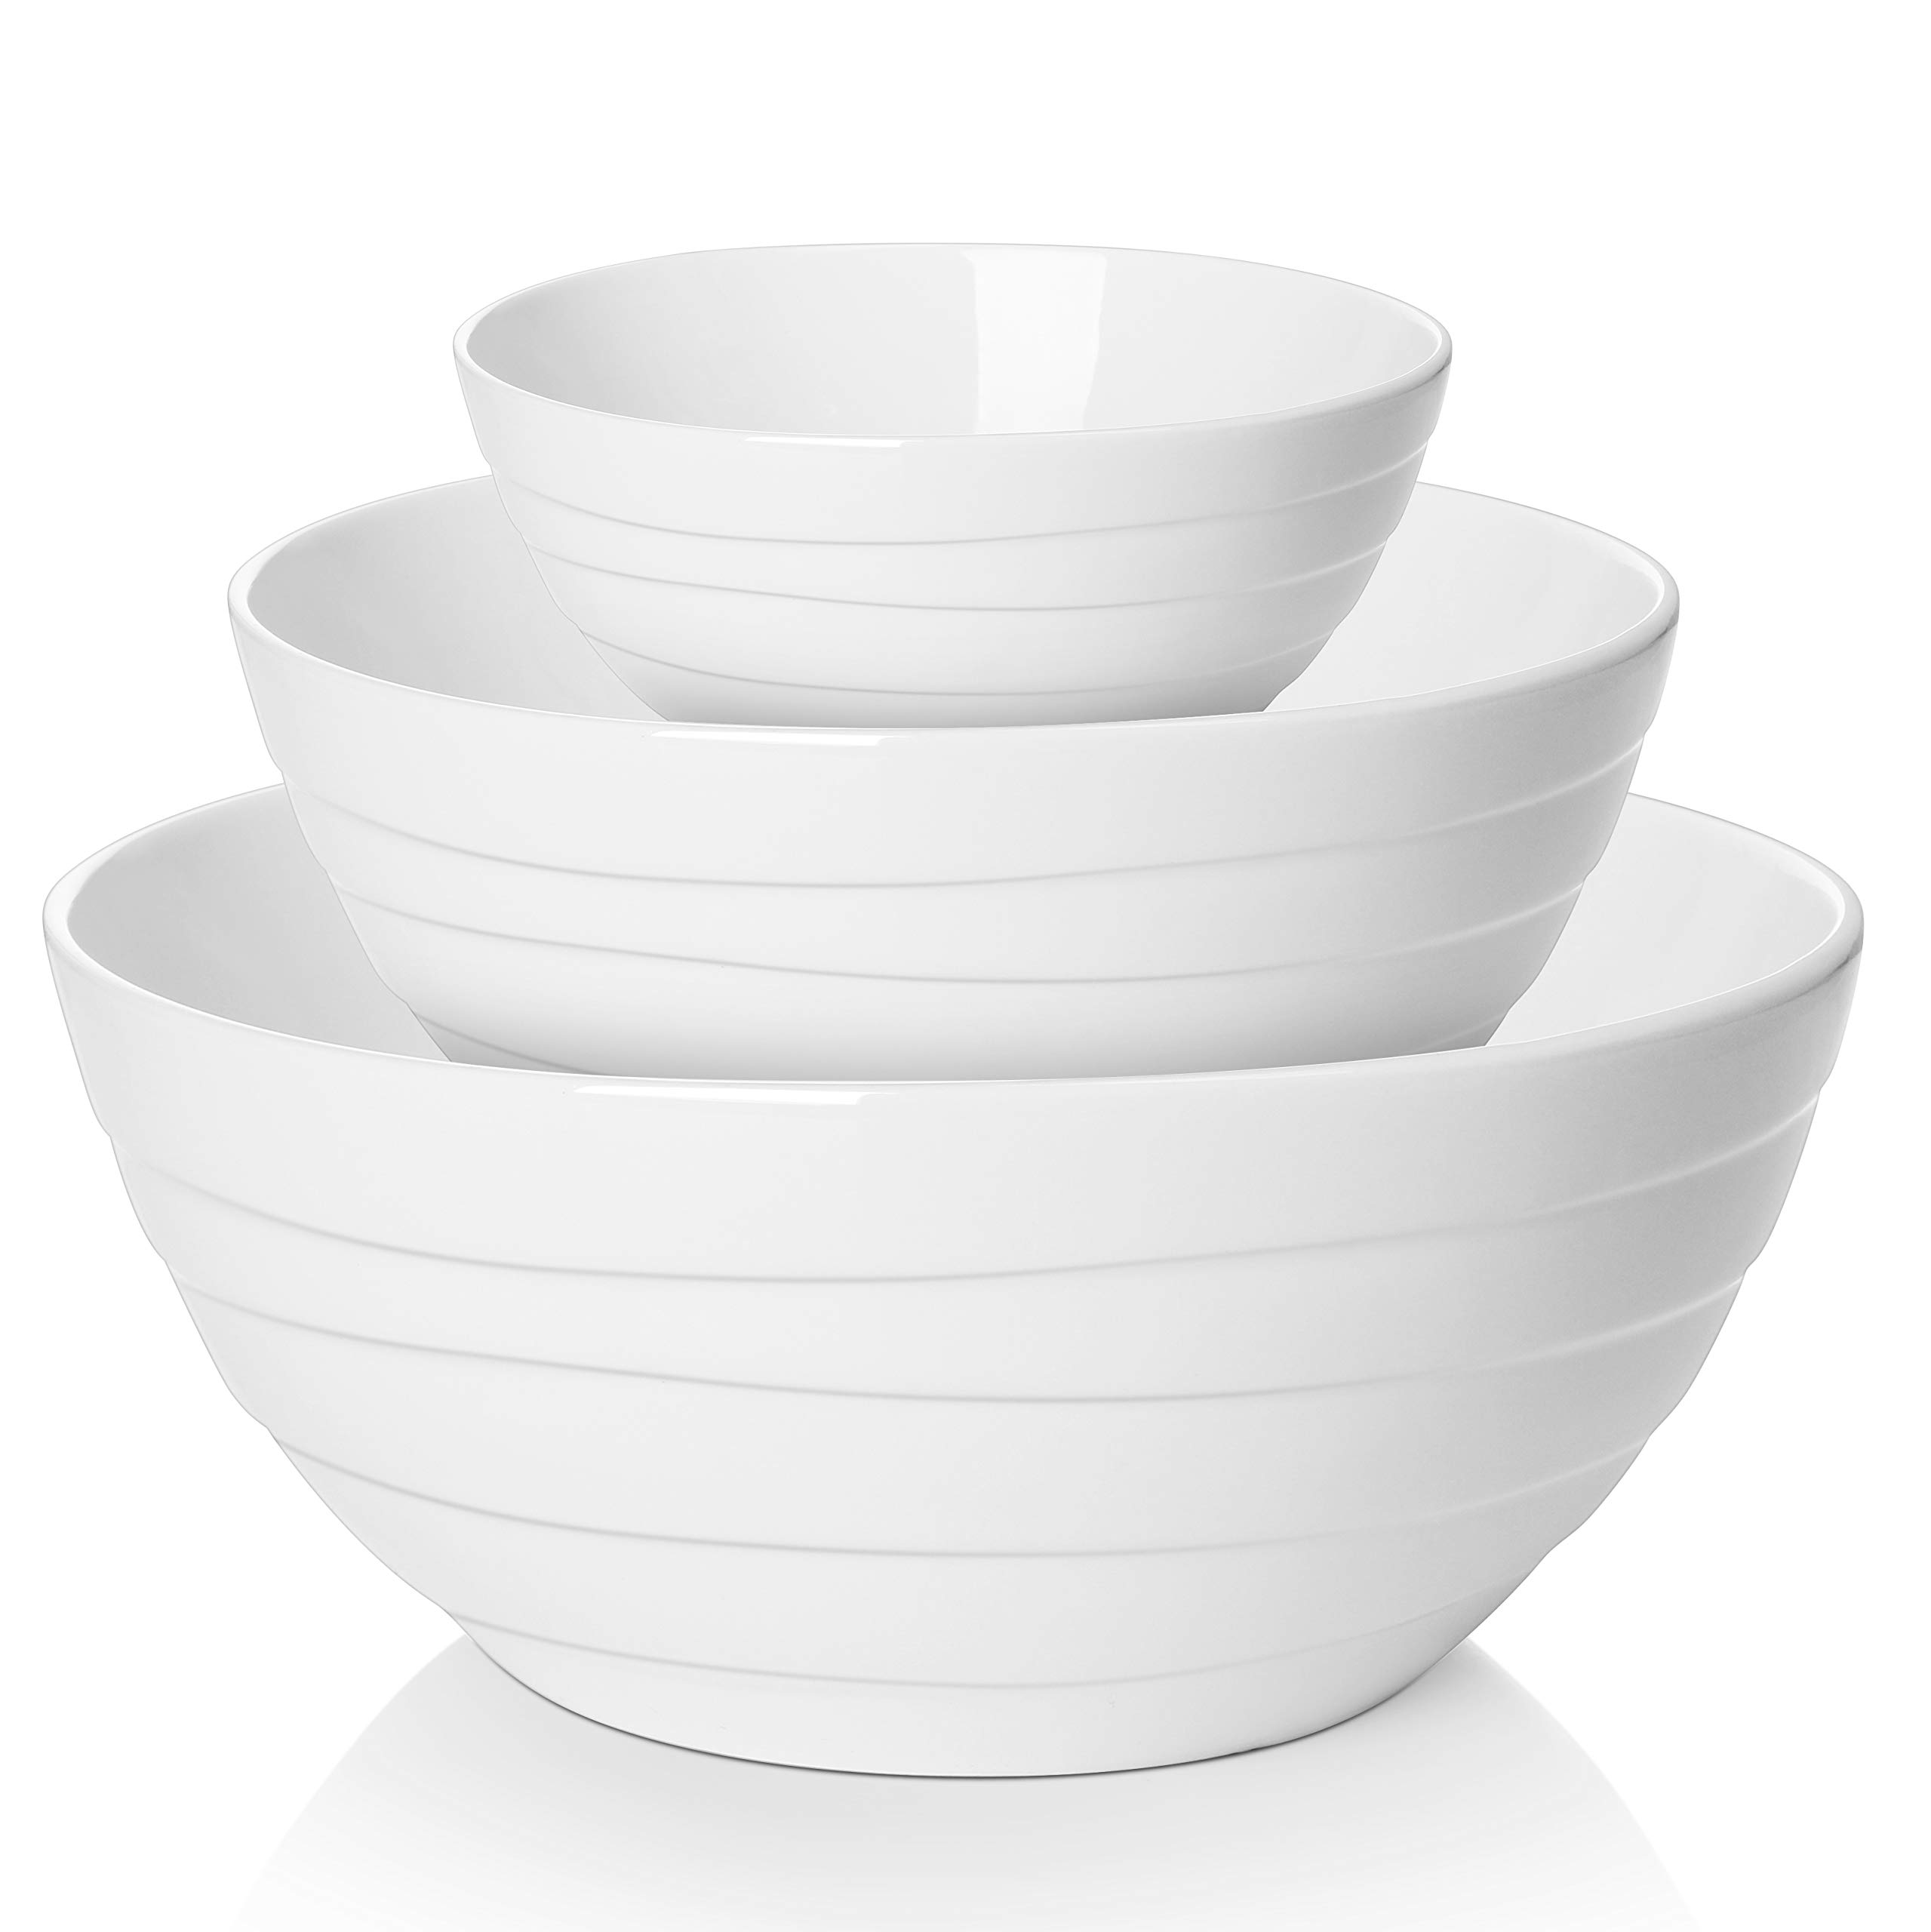 LIFVER Non Slip Serving Bowl Set, Ceramic Mixing Bowls, 0.6 Quart, 1.4 Quart, 3.1 Quart, Spiral Pattern, Set of 3, White by LIFVER